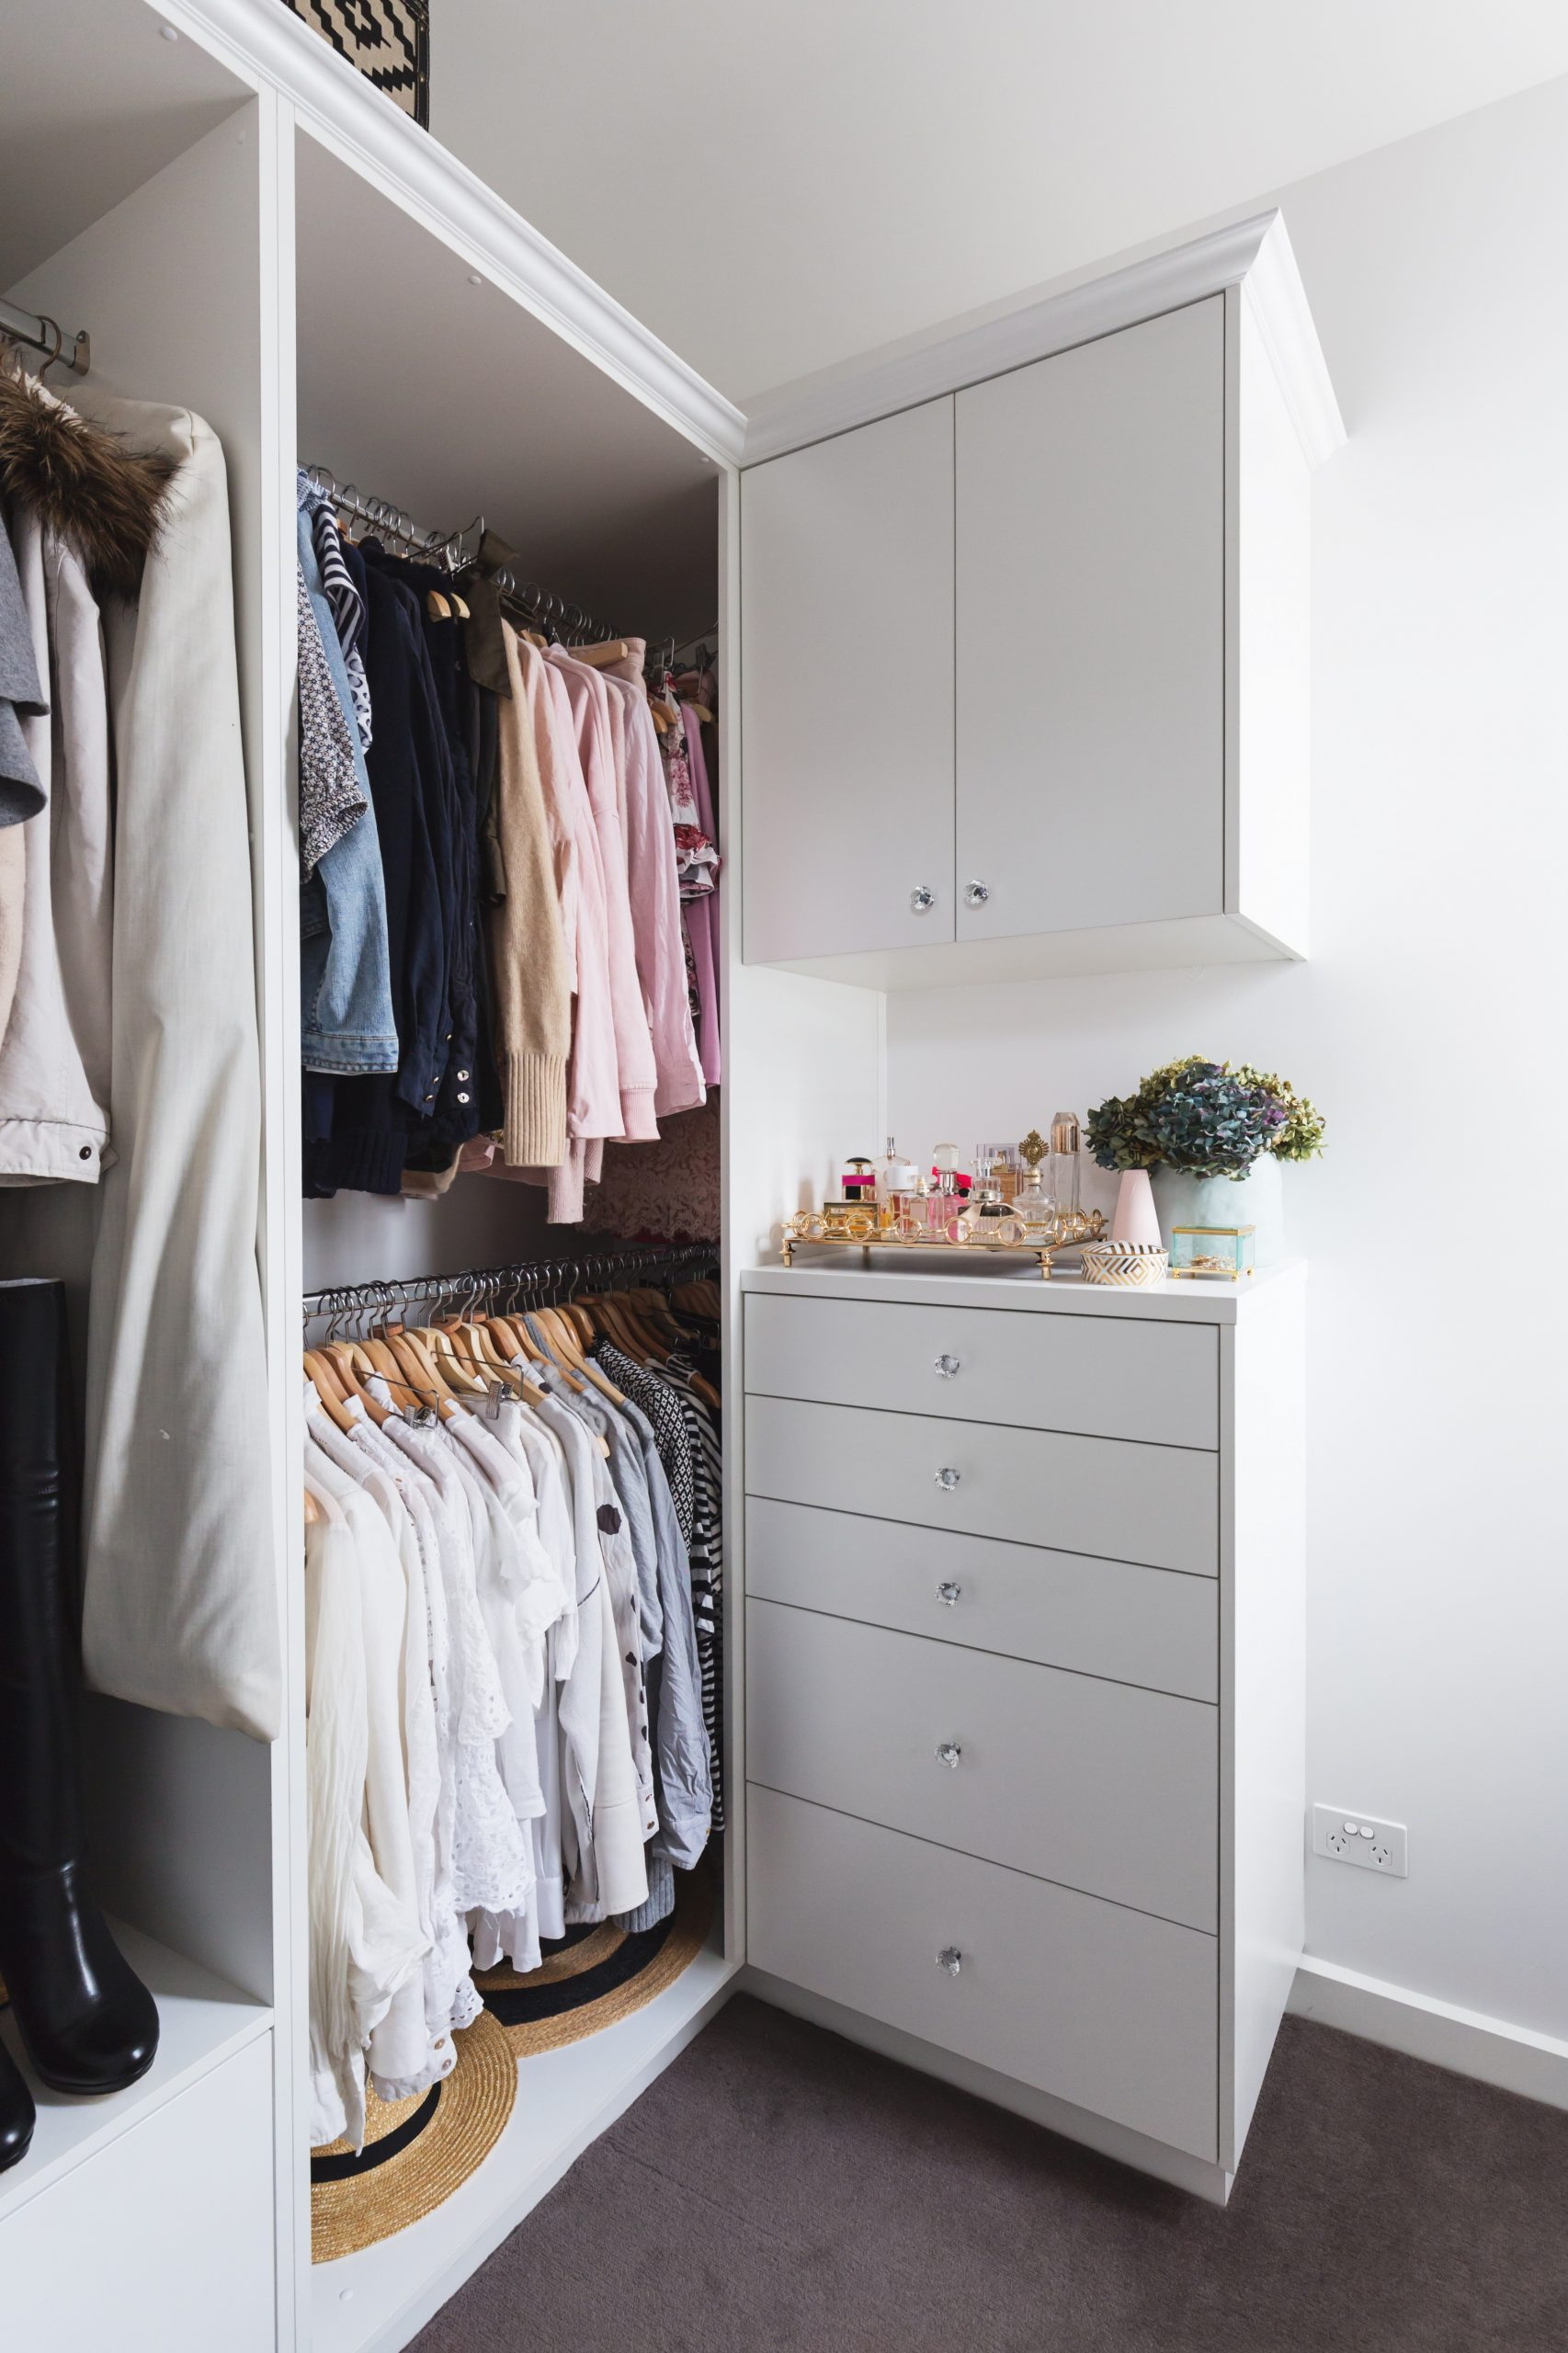 10 Ideas to Make The Most of Your Closet  Apartment Therapy - Closet Ideas In Apartment